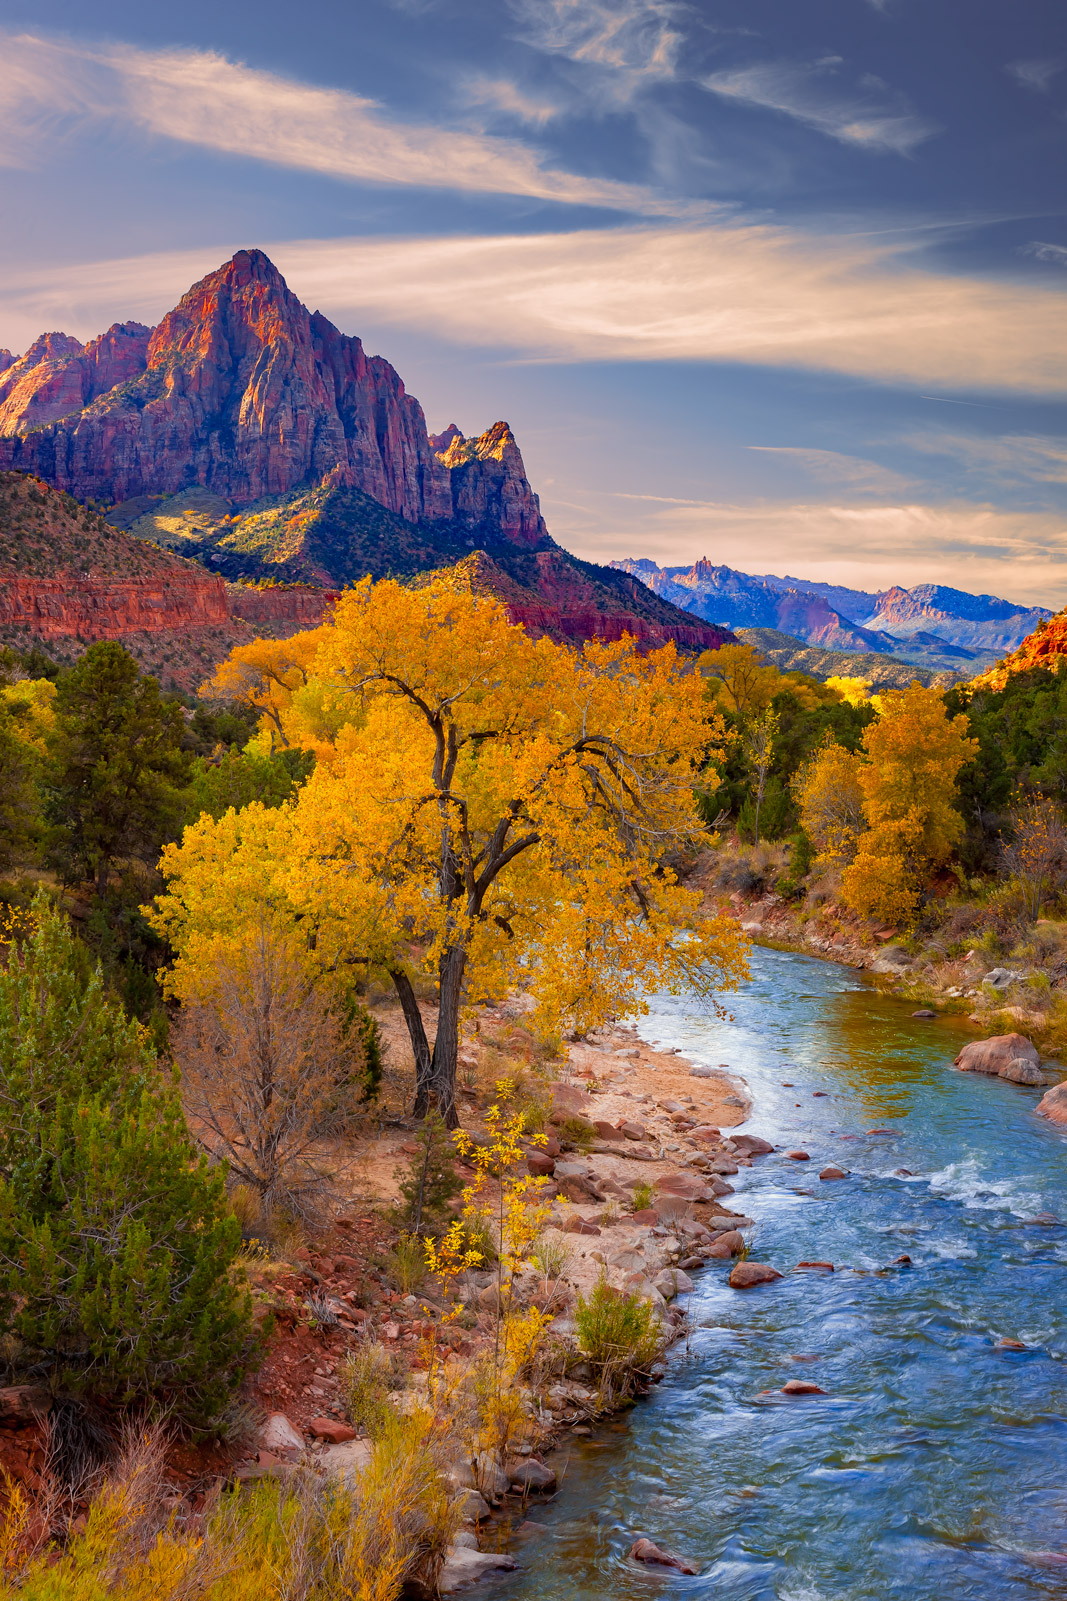 Utah, Zion Park, The Watchman, Virgin River, Fall, limited edition, photograph, fine art, landscape, photo